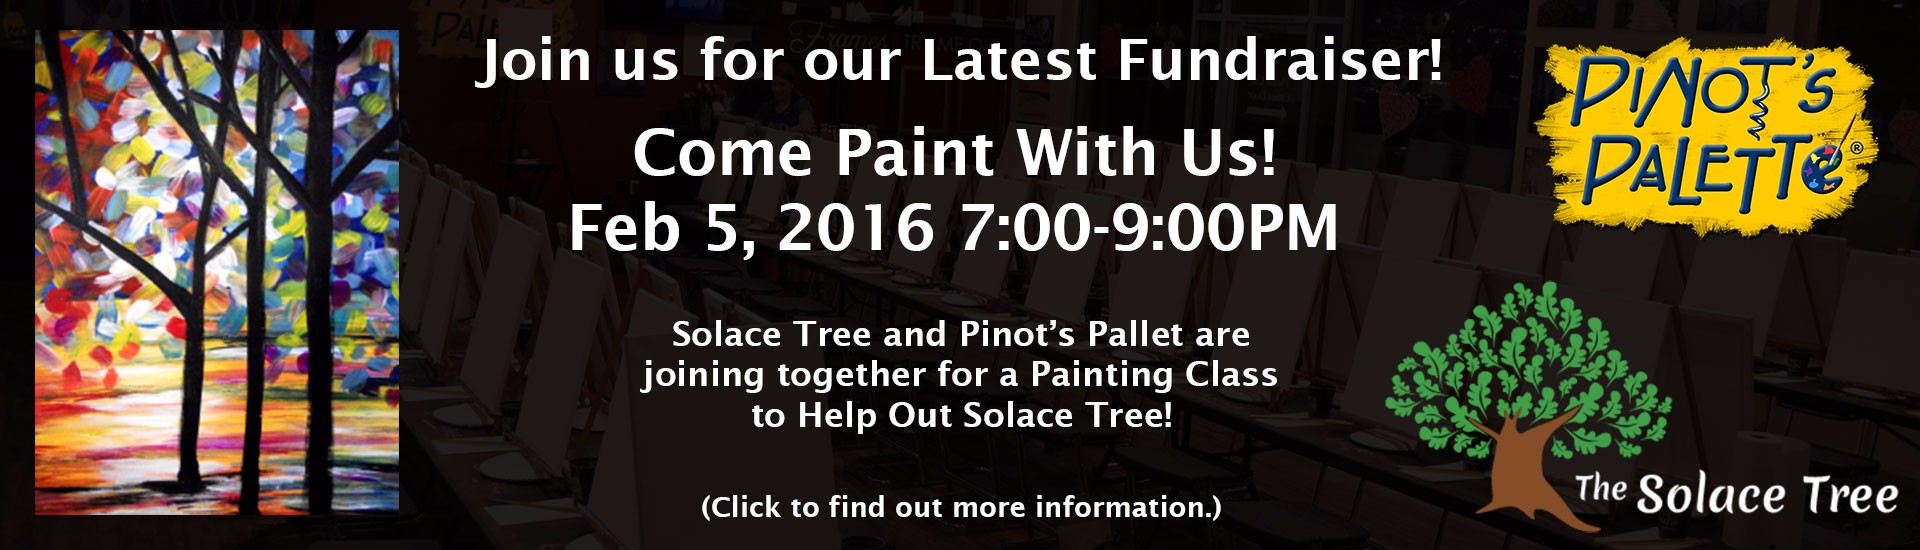 Pinot's Palette - Fundraiser for Solace Tree